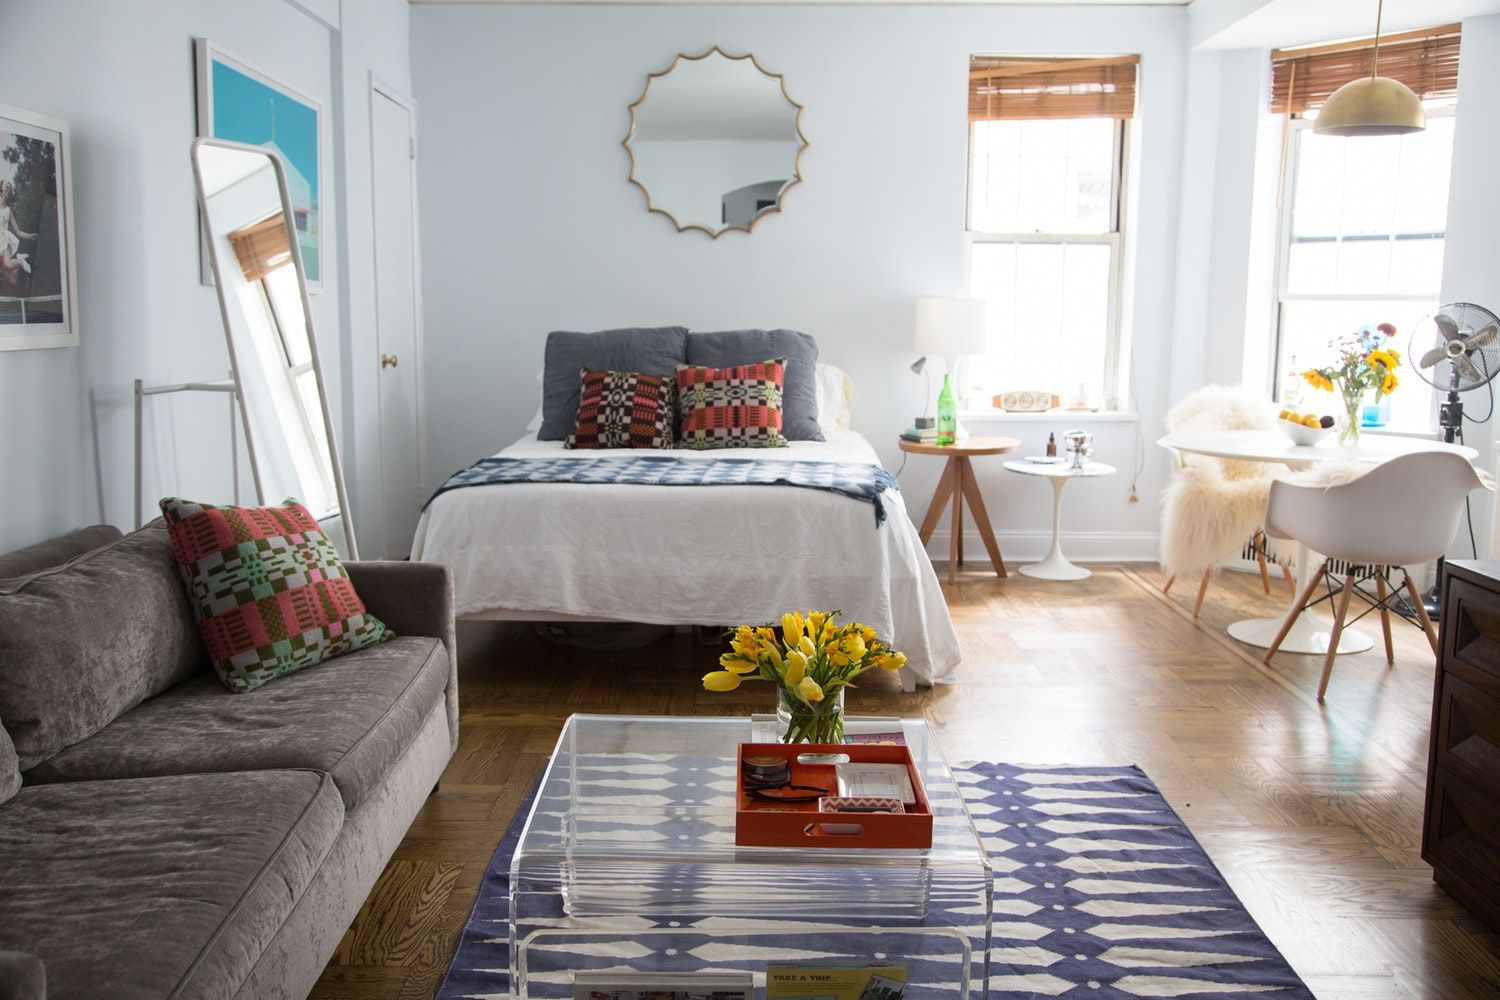 Why It Works Style Lessons from a SquareFoot NYC Home